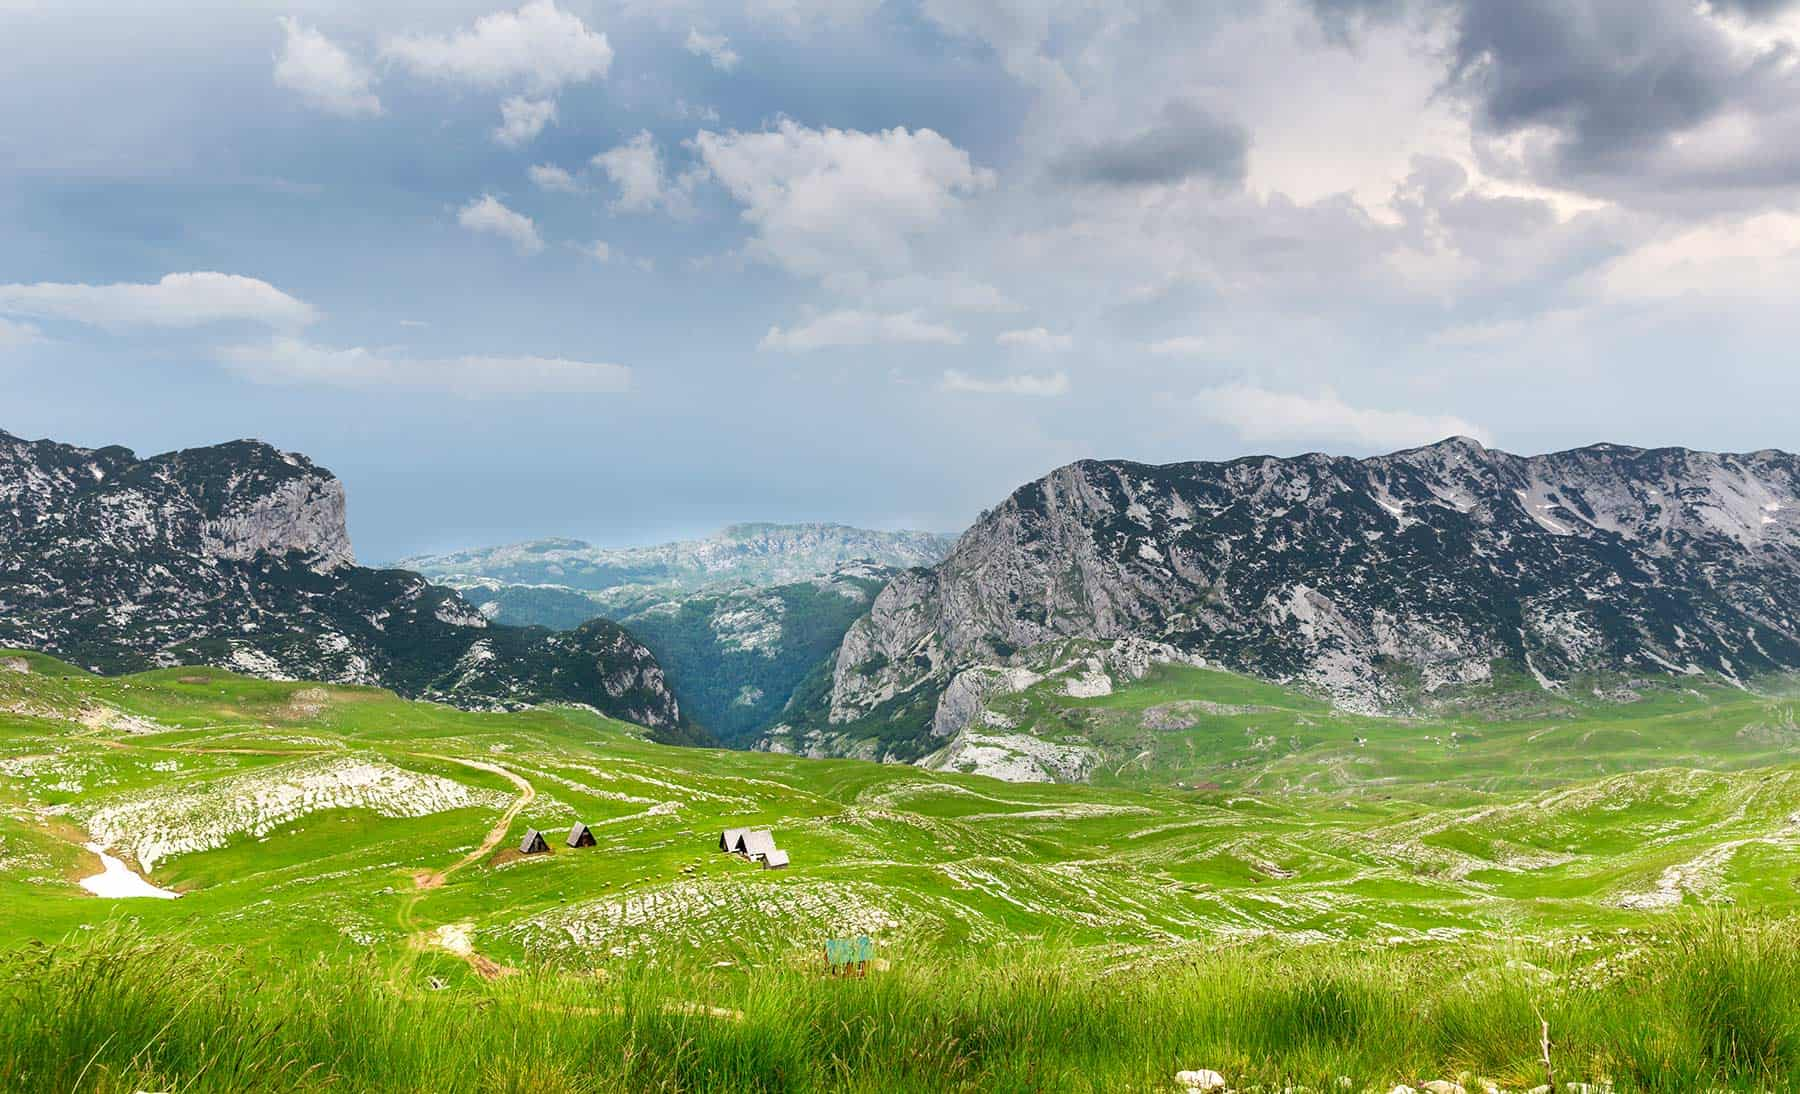 Mountains and green landscapes in Durmitor National Park